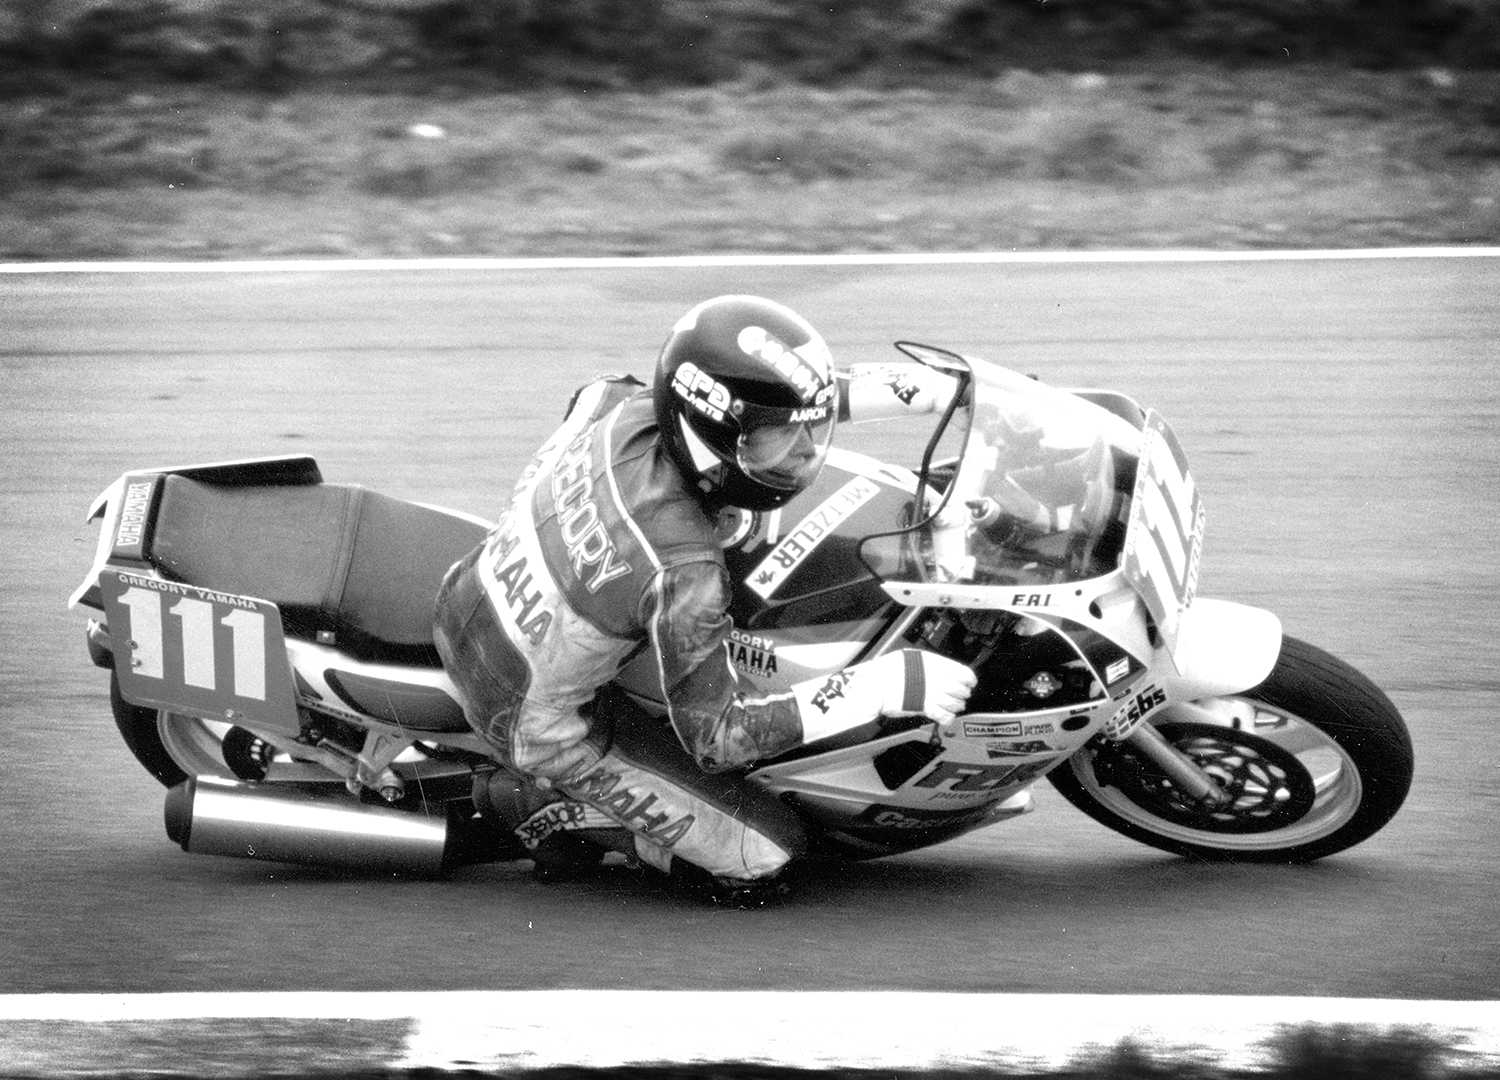 Pete Nikolaison   Aaron Slight   Aaron Slight, who was born in Masterton in 1966, became a top flight motorcycle racer, amassing 87 podium finishes and 13 wins in the World Superbike Championship through the 1990s. He is the only rider to have won three consecutive Suzuka 8-hour races.